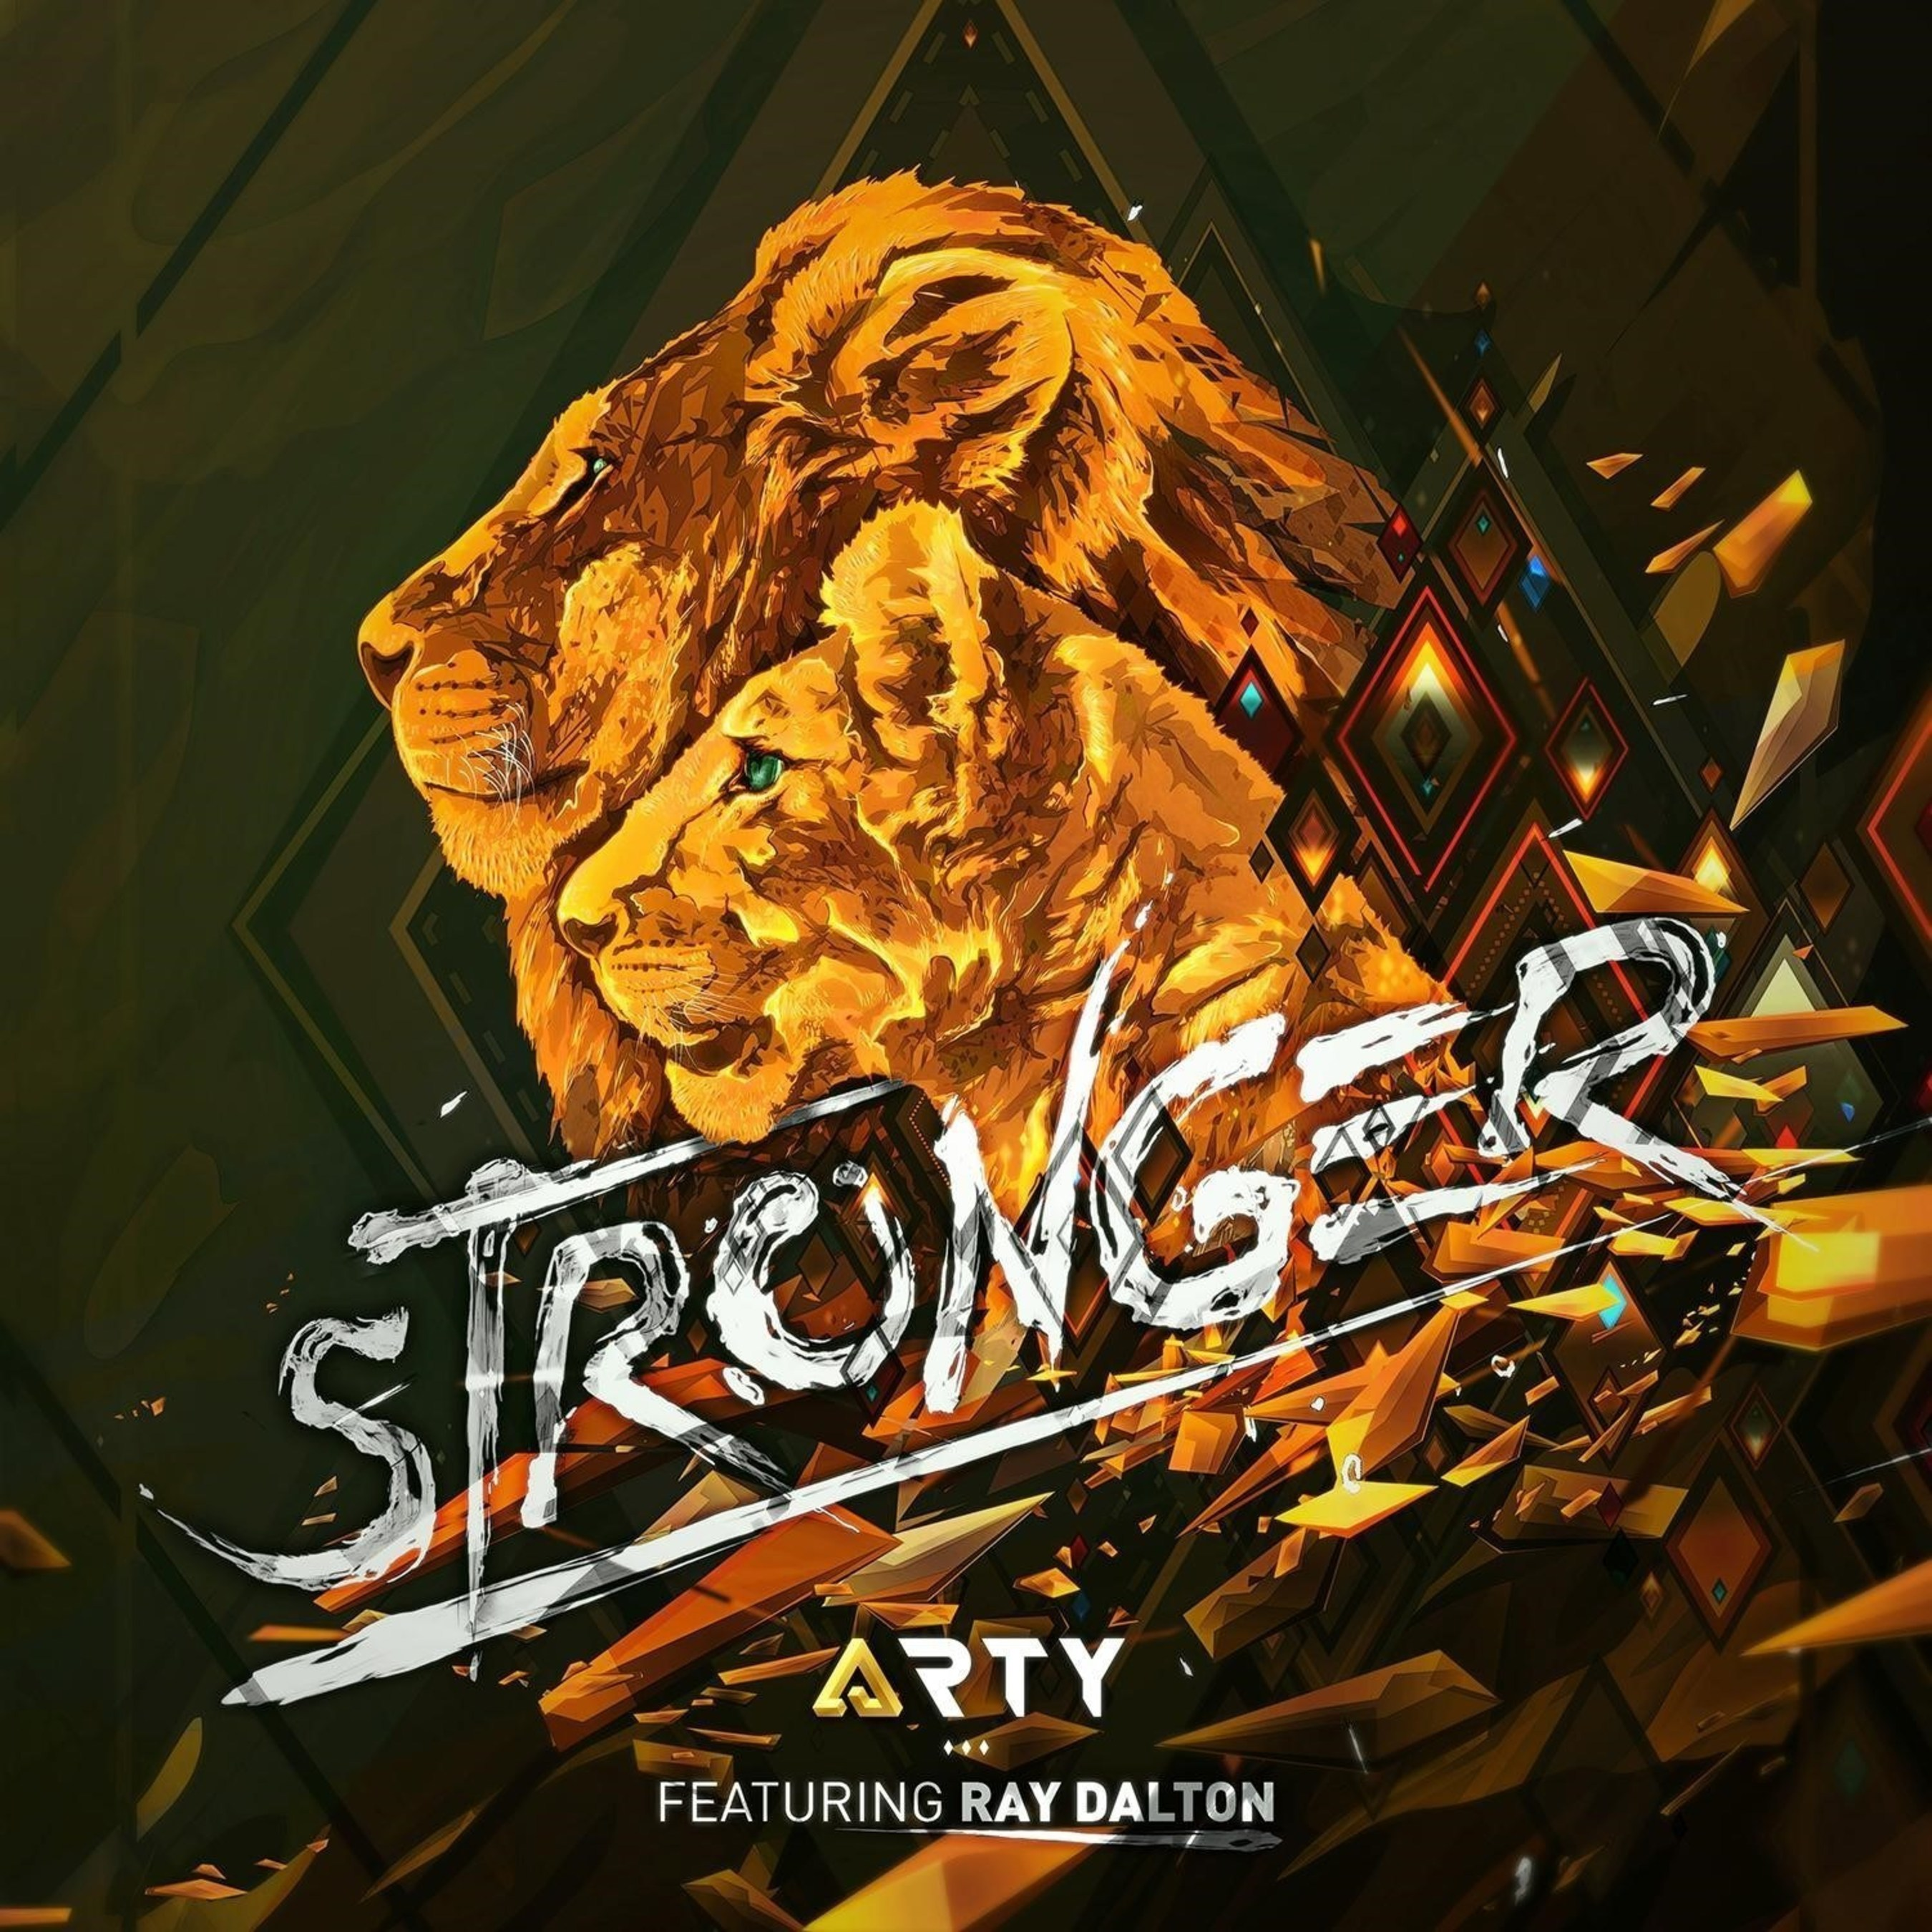 ARTY's 'Stronger (feat. Ray Dalton)' out now on Insomniac Records/Interscope Records